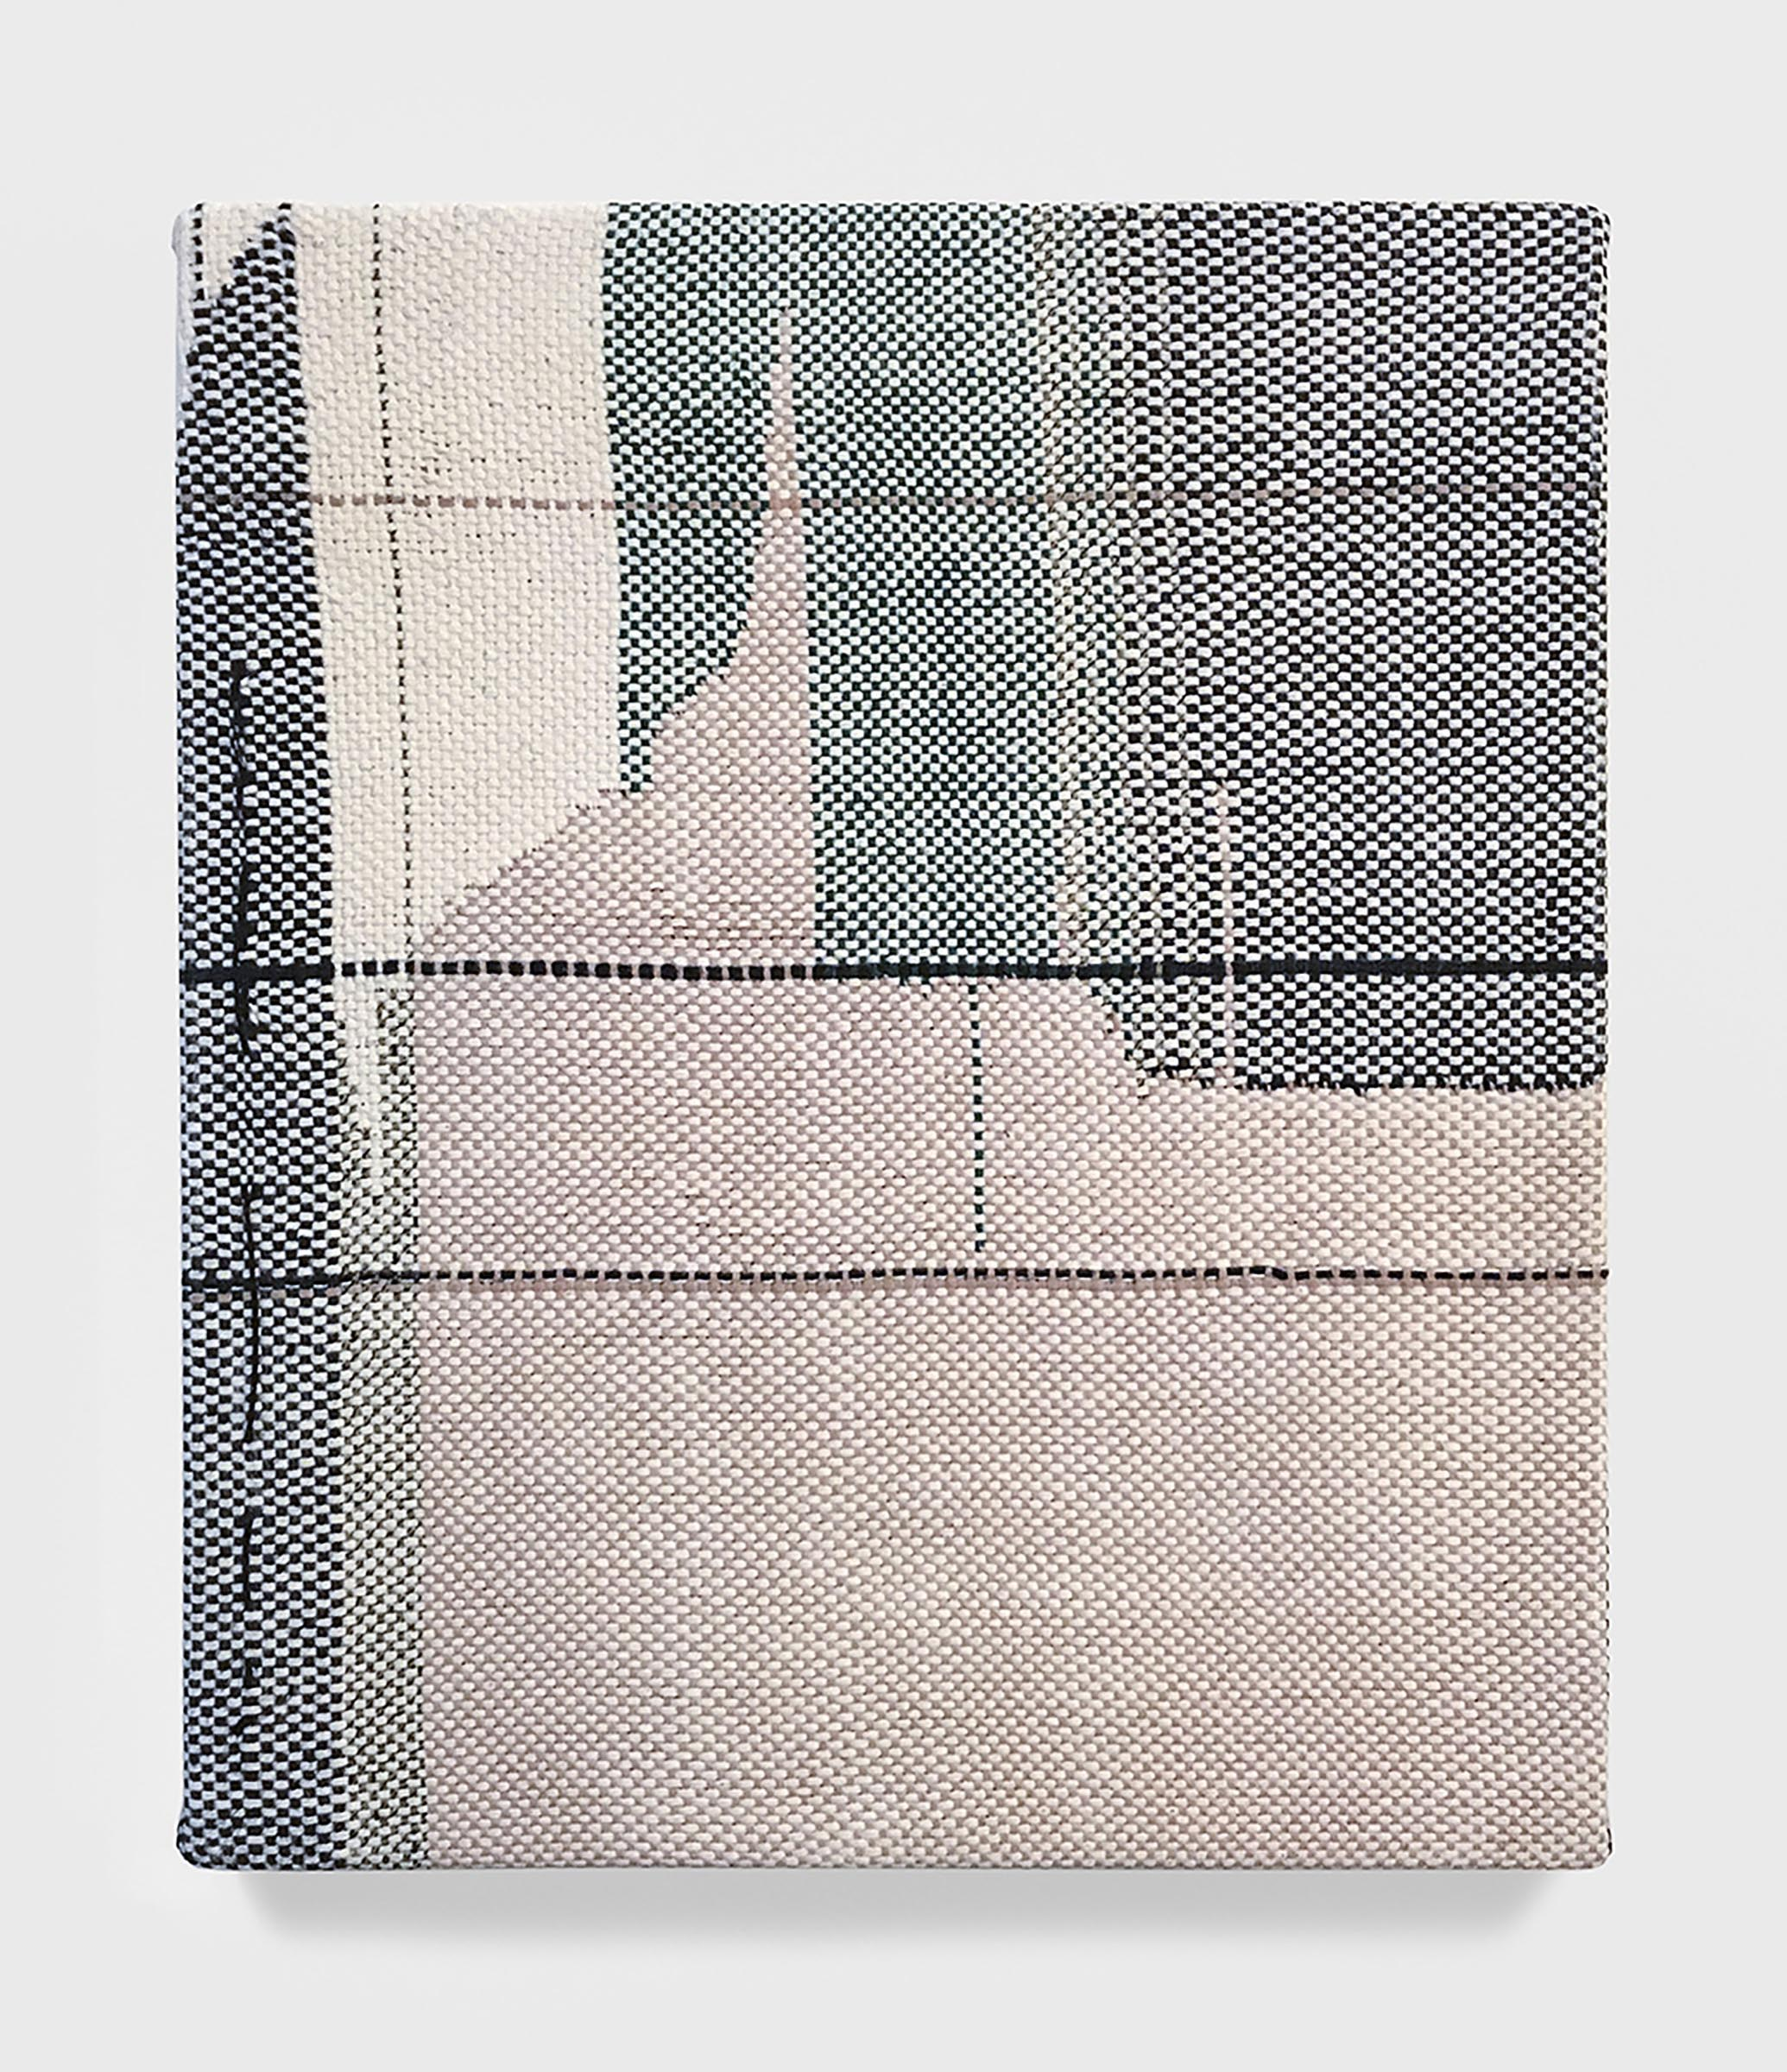 Mary Raap, Landing Gear, Handwoven cotton and silk, acrylic medium over canvas, 14 x 12 x 1 in, 2018